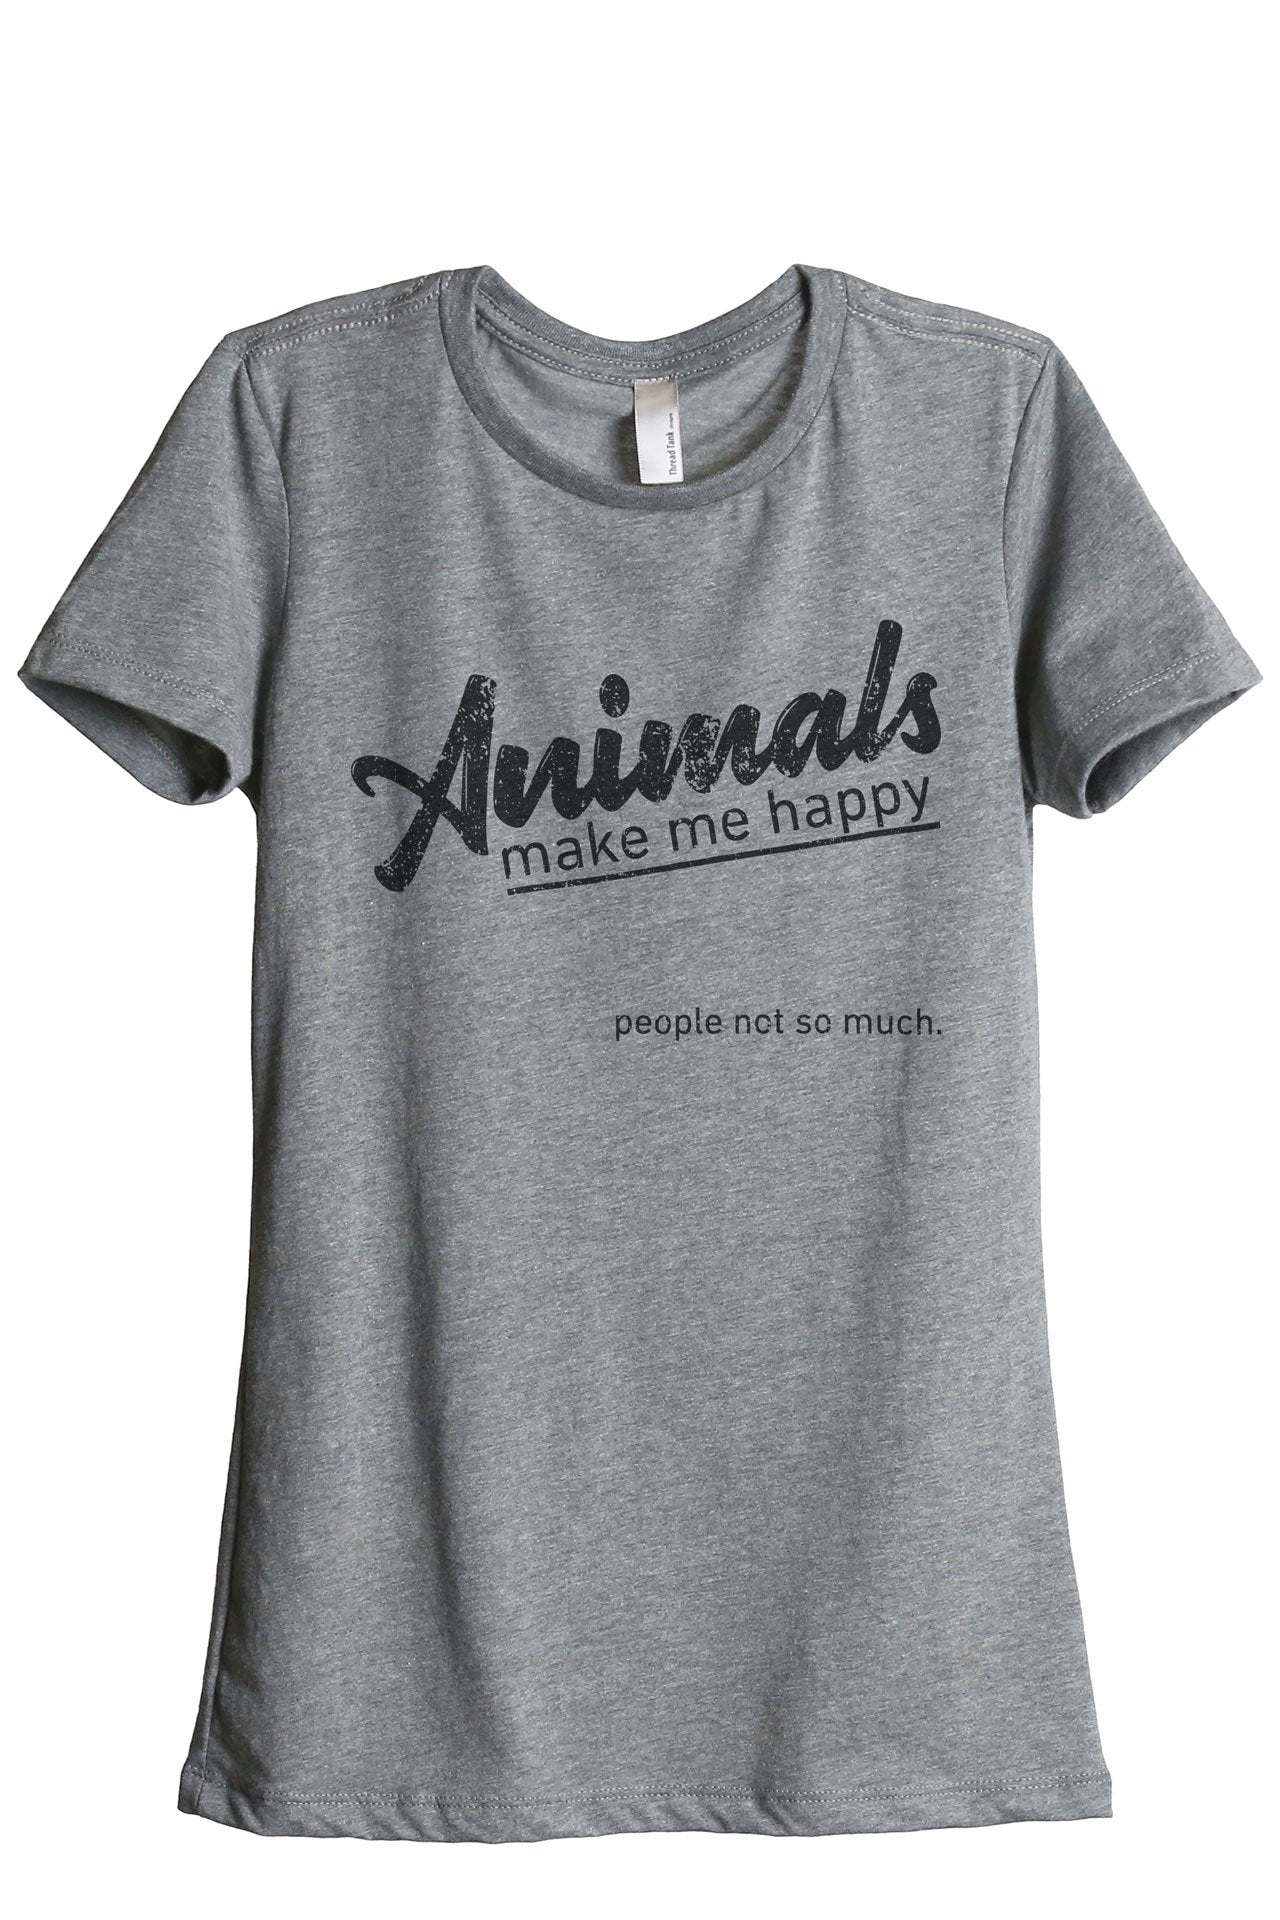 Animals Make Me Happy - Thread Tank | Stories You Can Wear | T-Shirts, Tank Tops and Sweatshirts